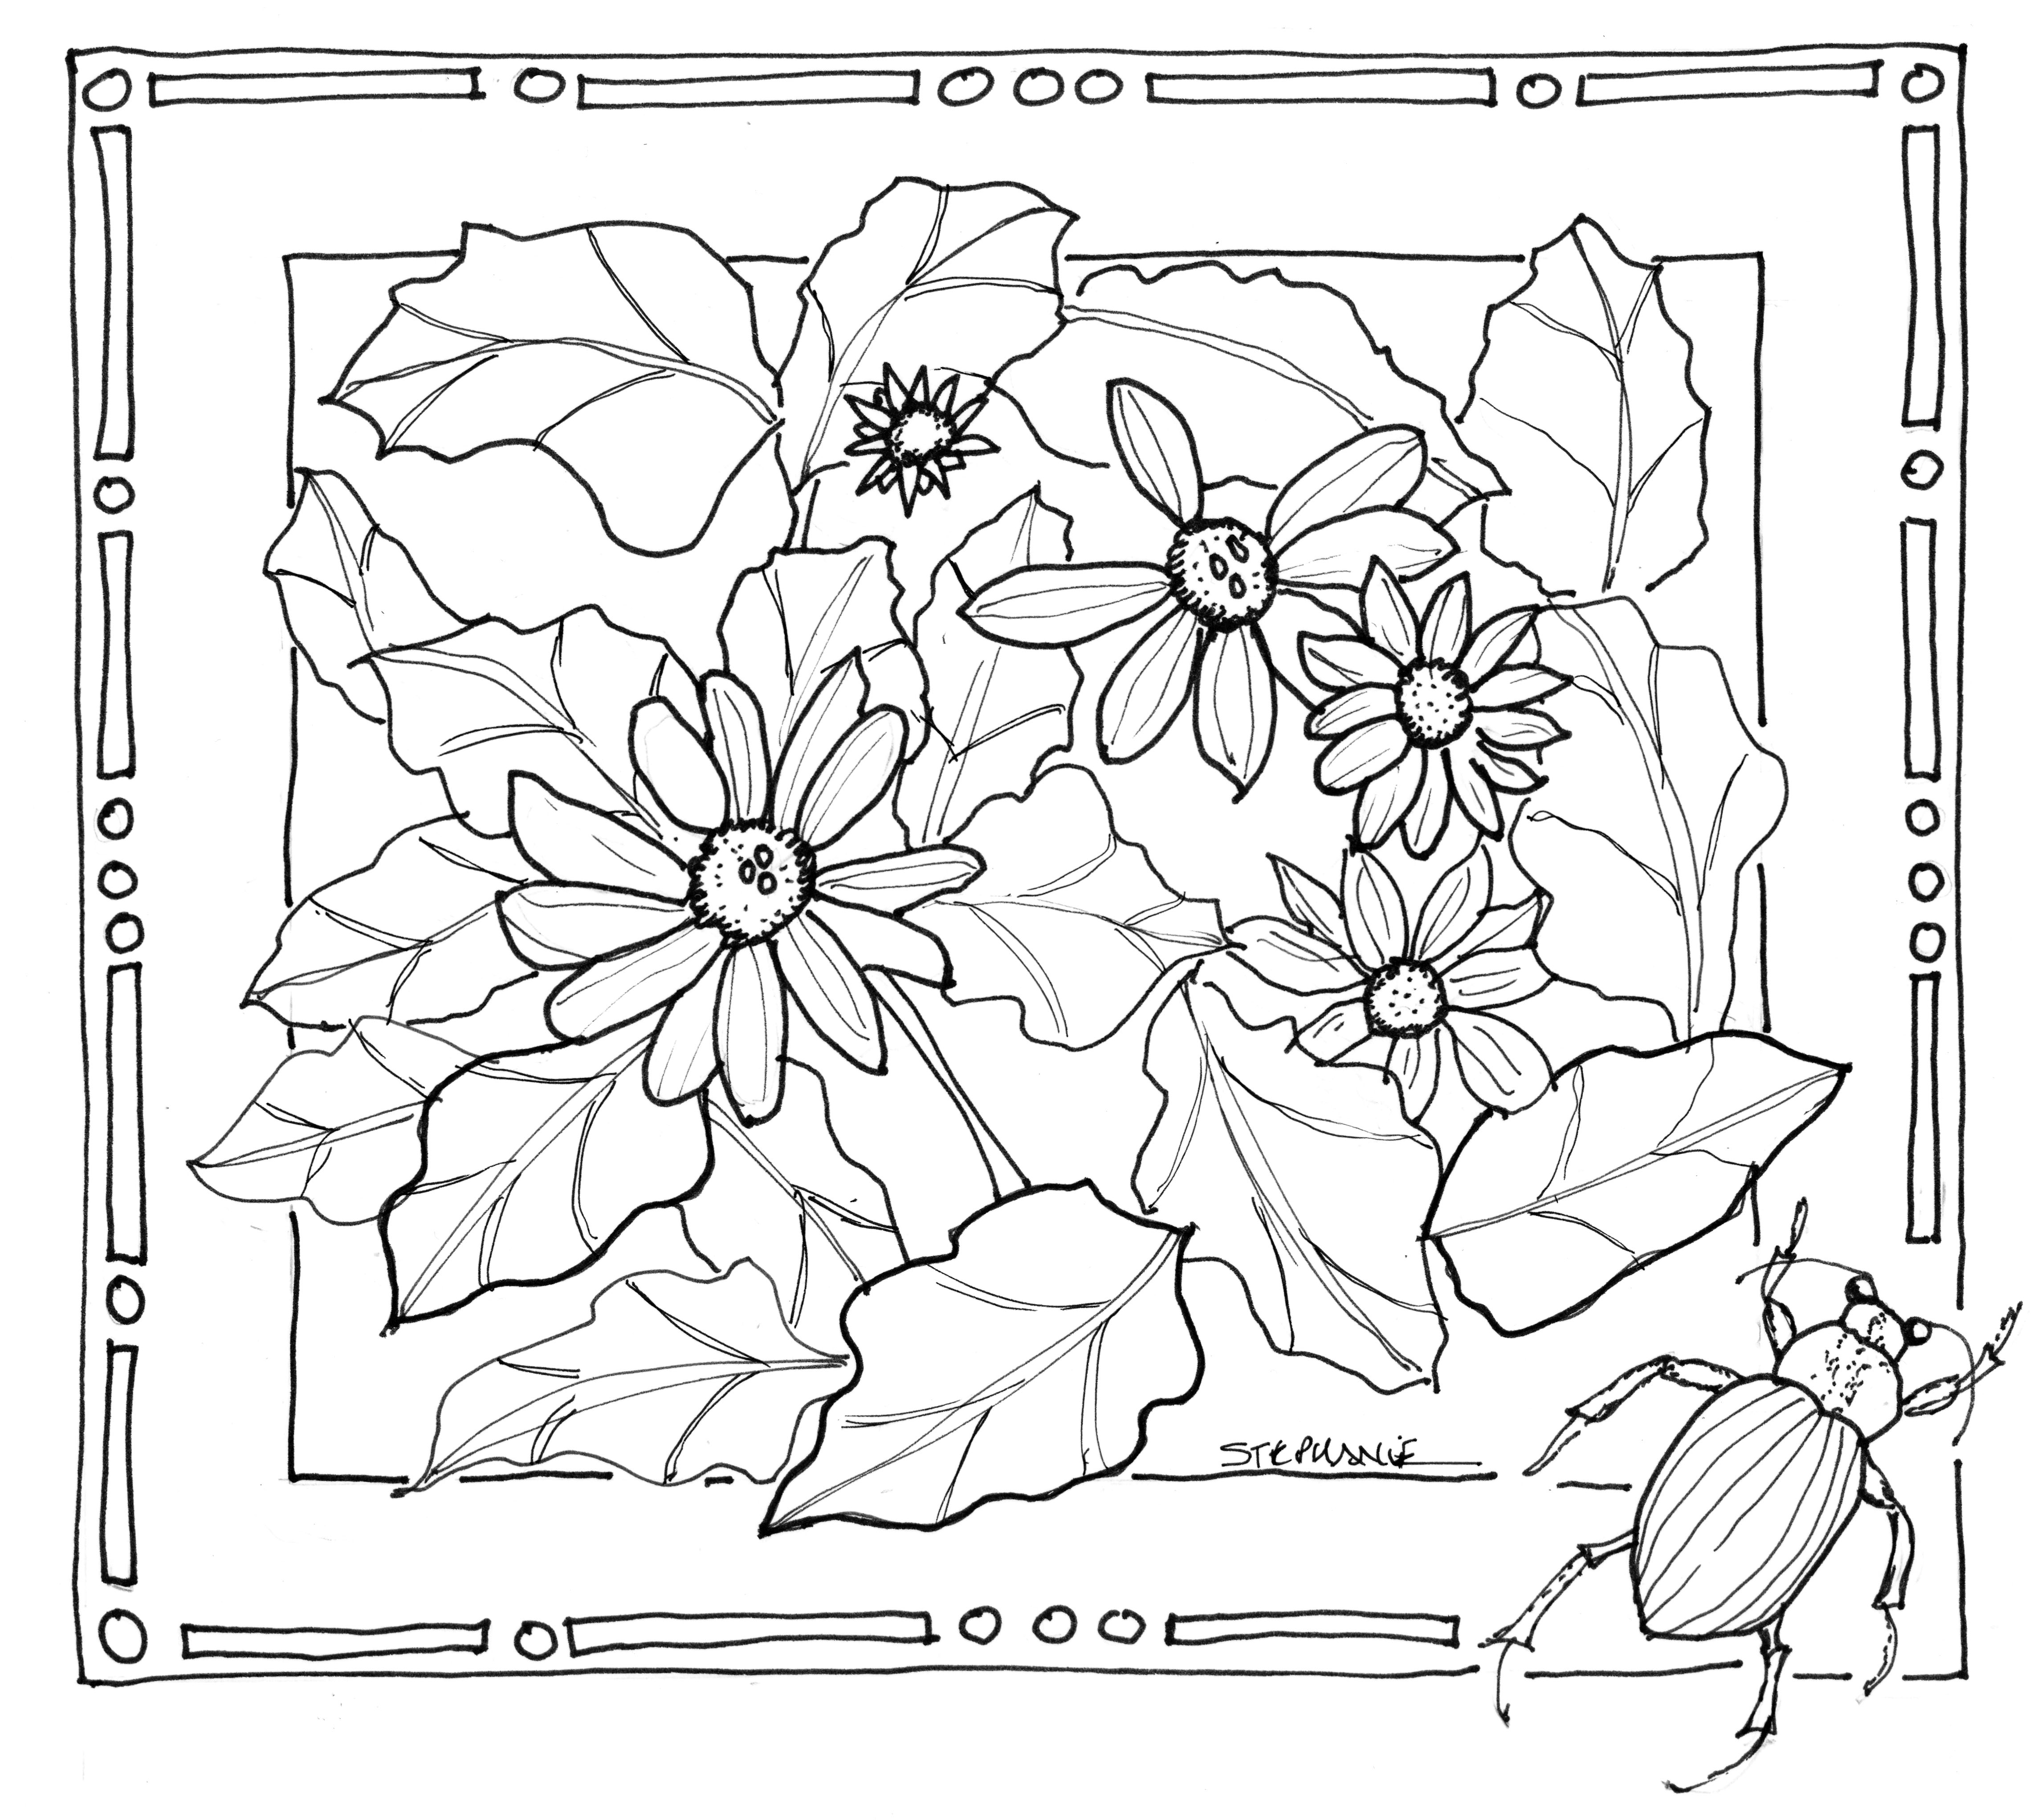 Nature Coloring Pages Printable at GetDrawings.com   Free for ...